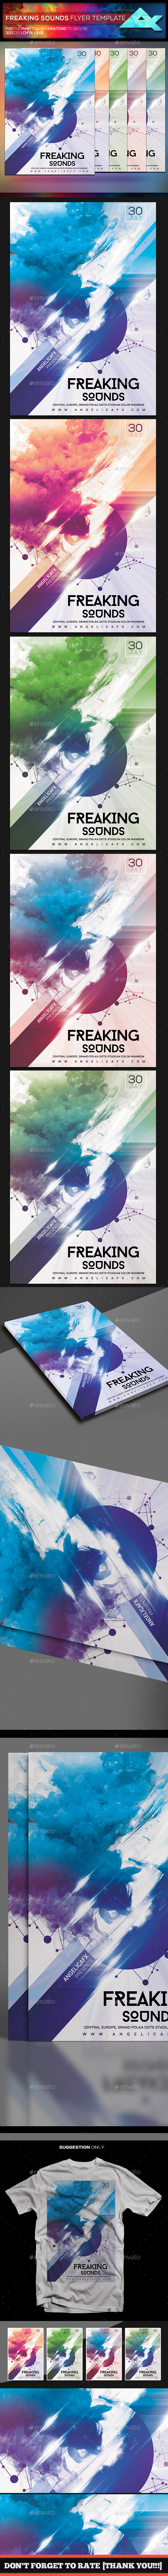 Freaking Sounds Flyer Template - Corporate Flyers